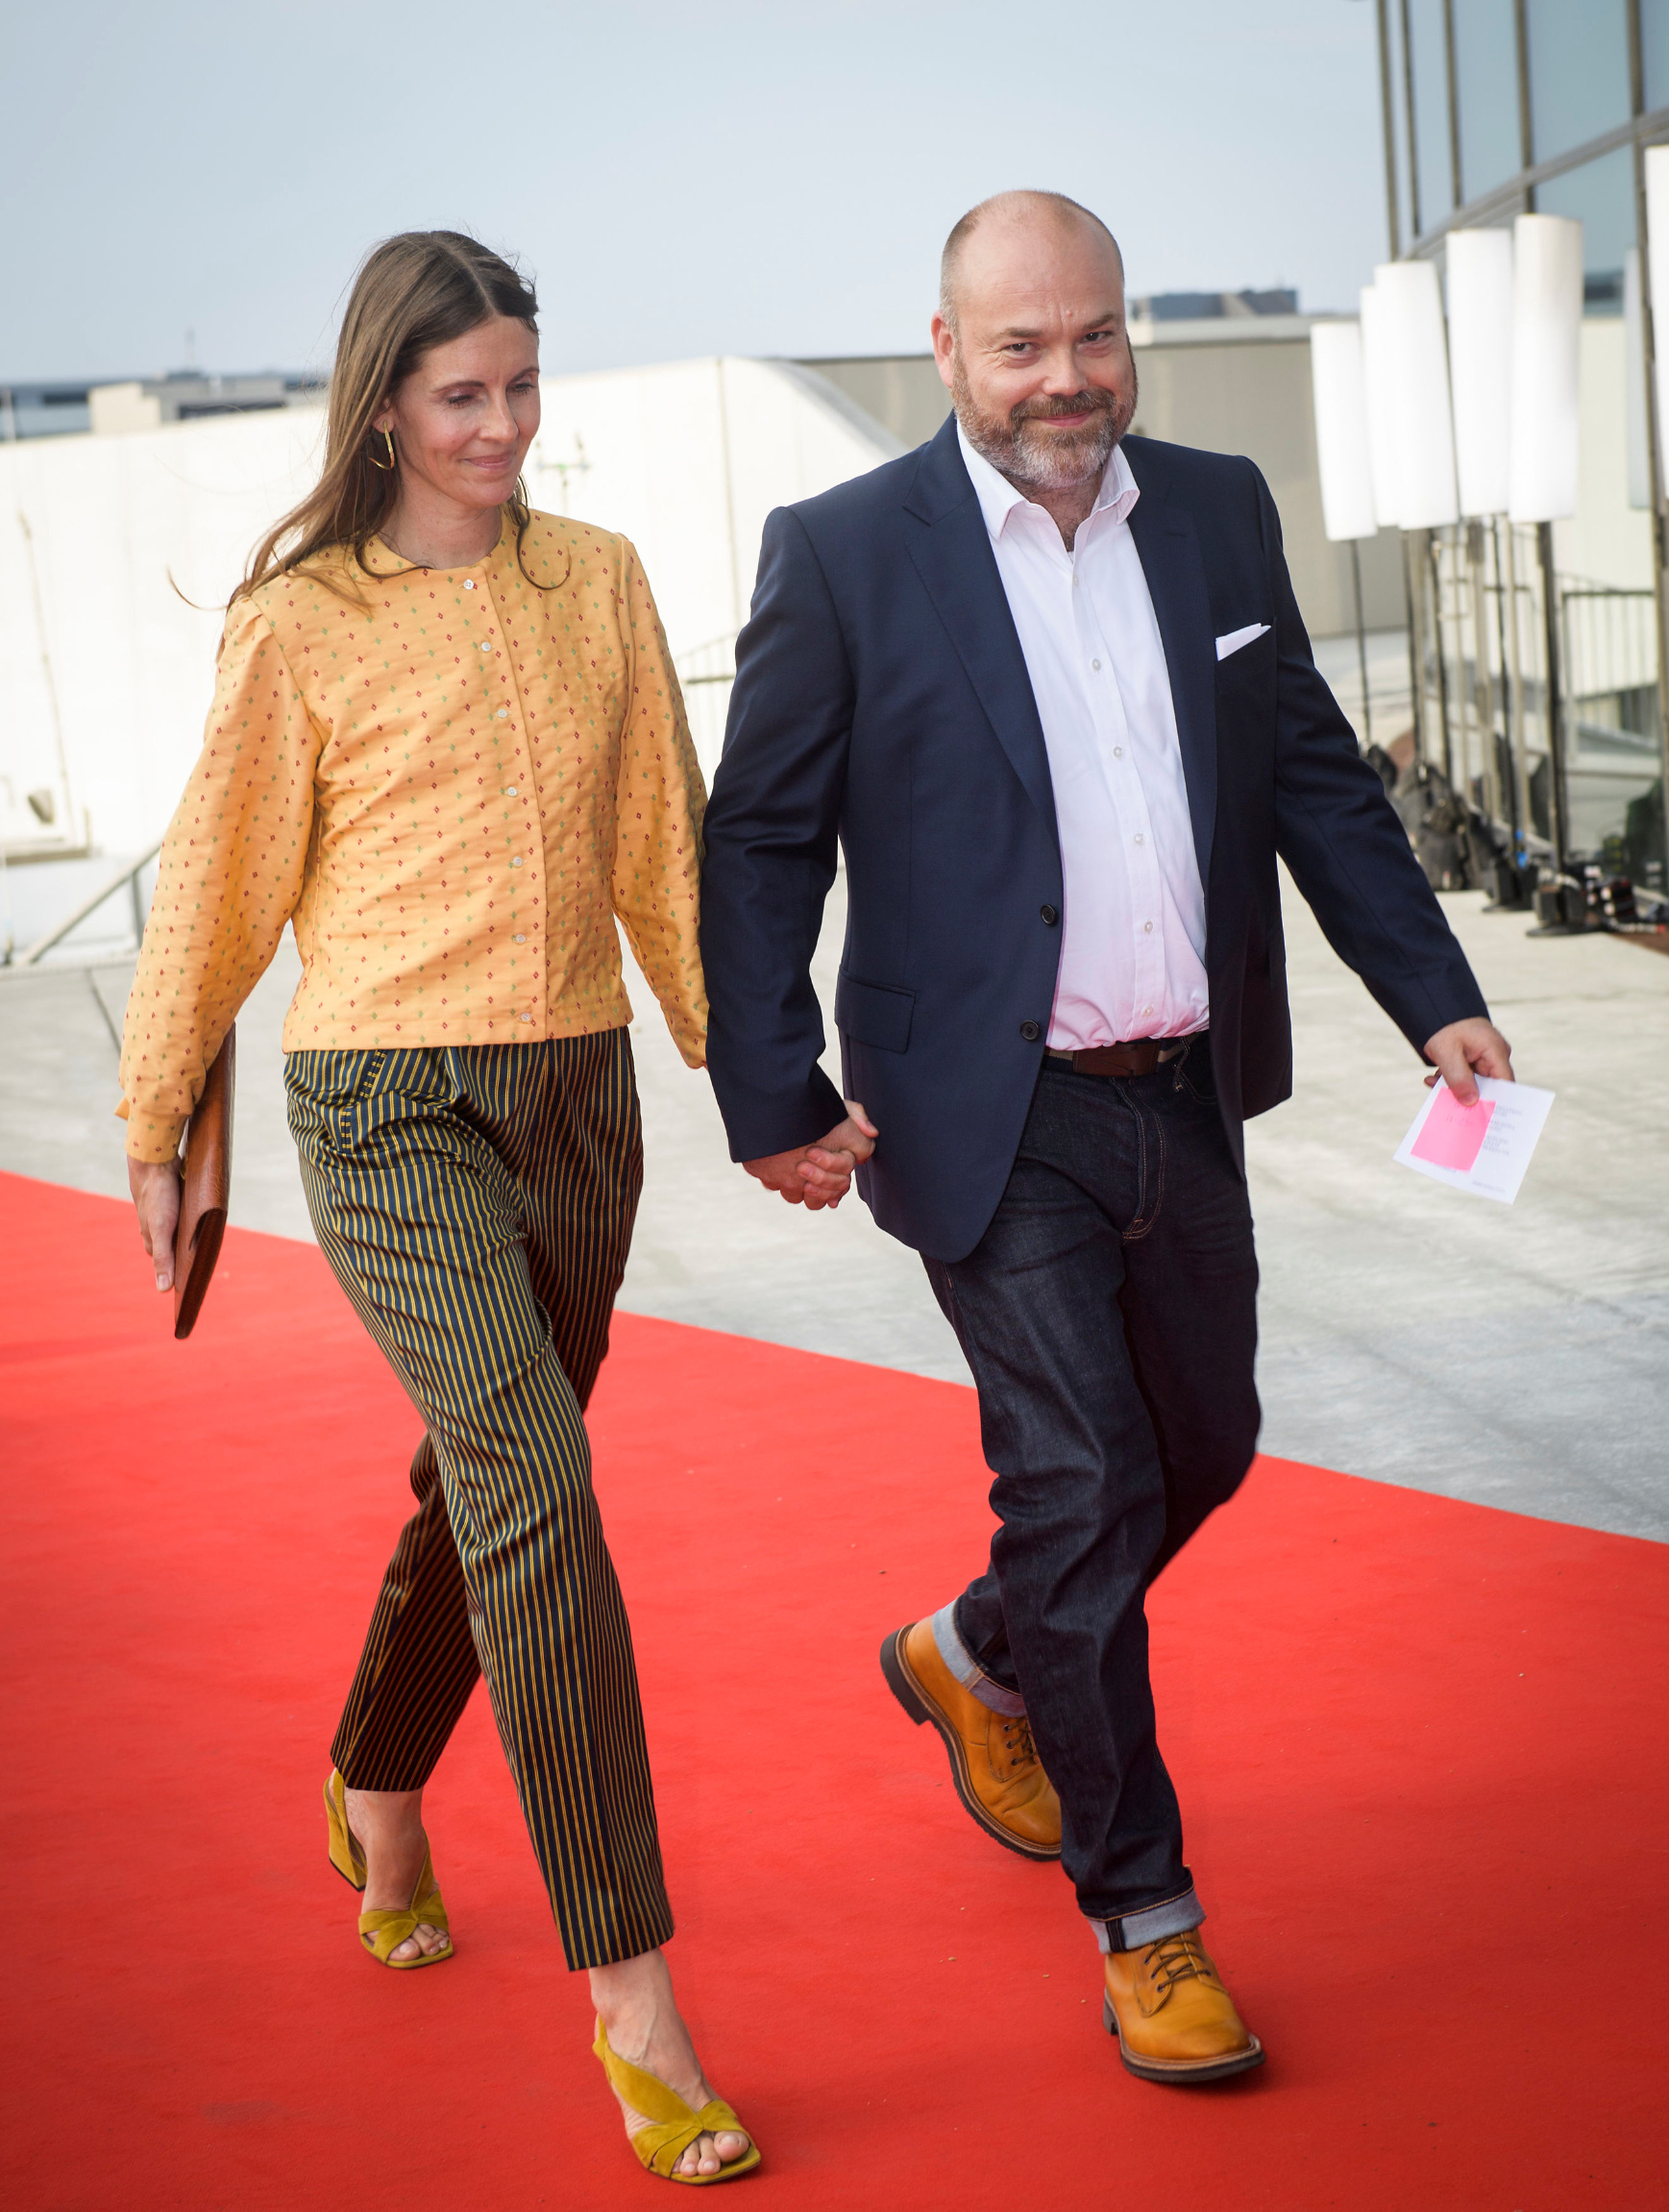 Anders Holch Povlsen i supruga Anne